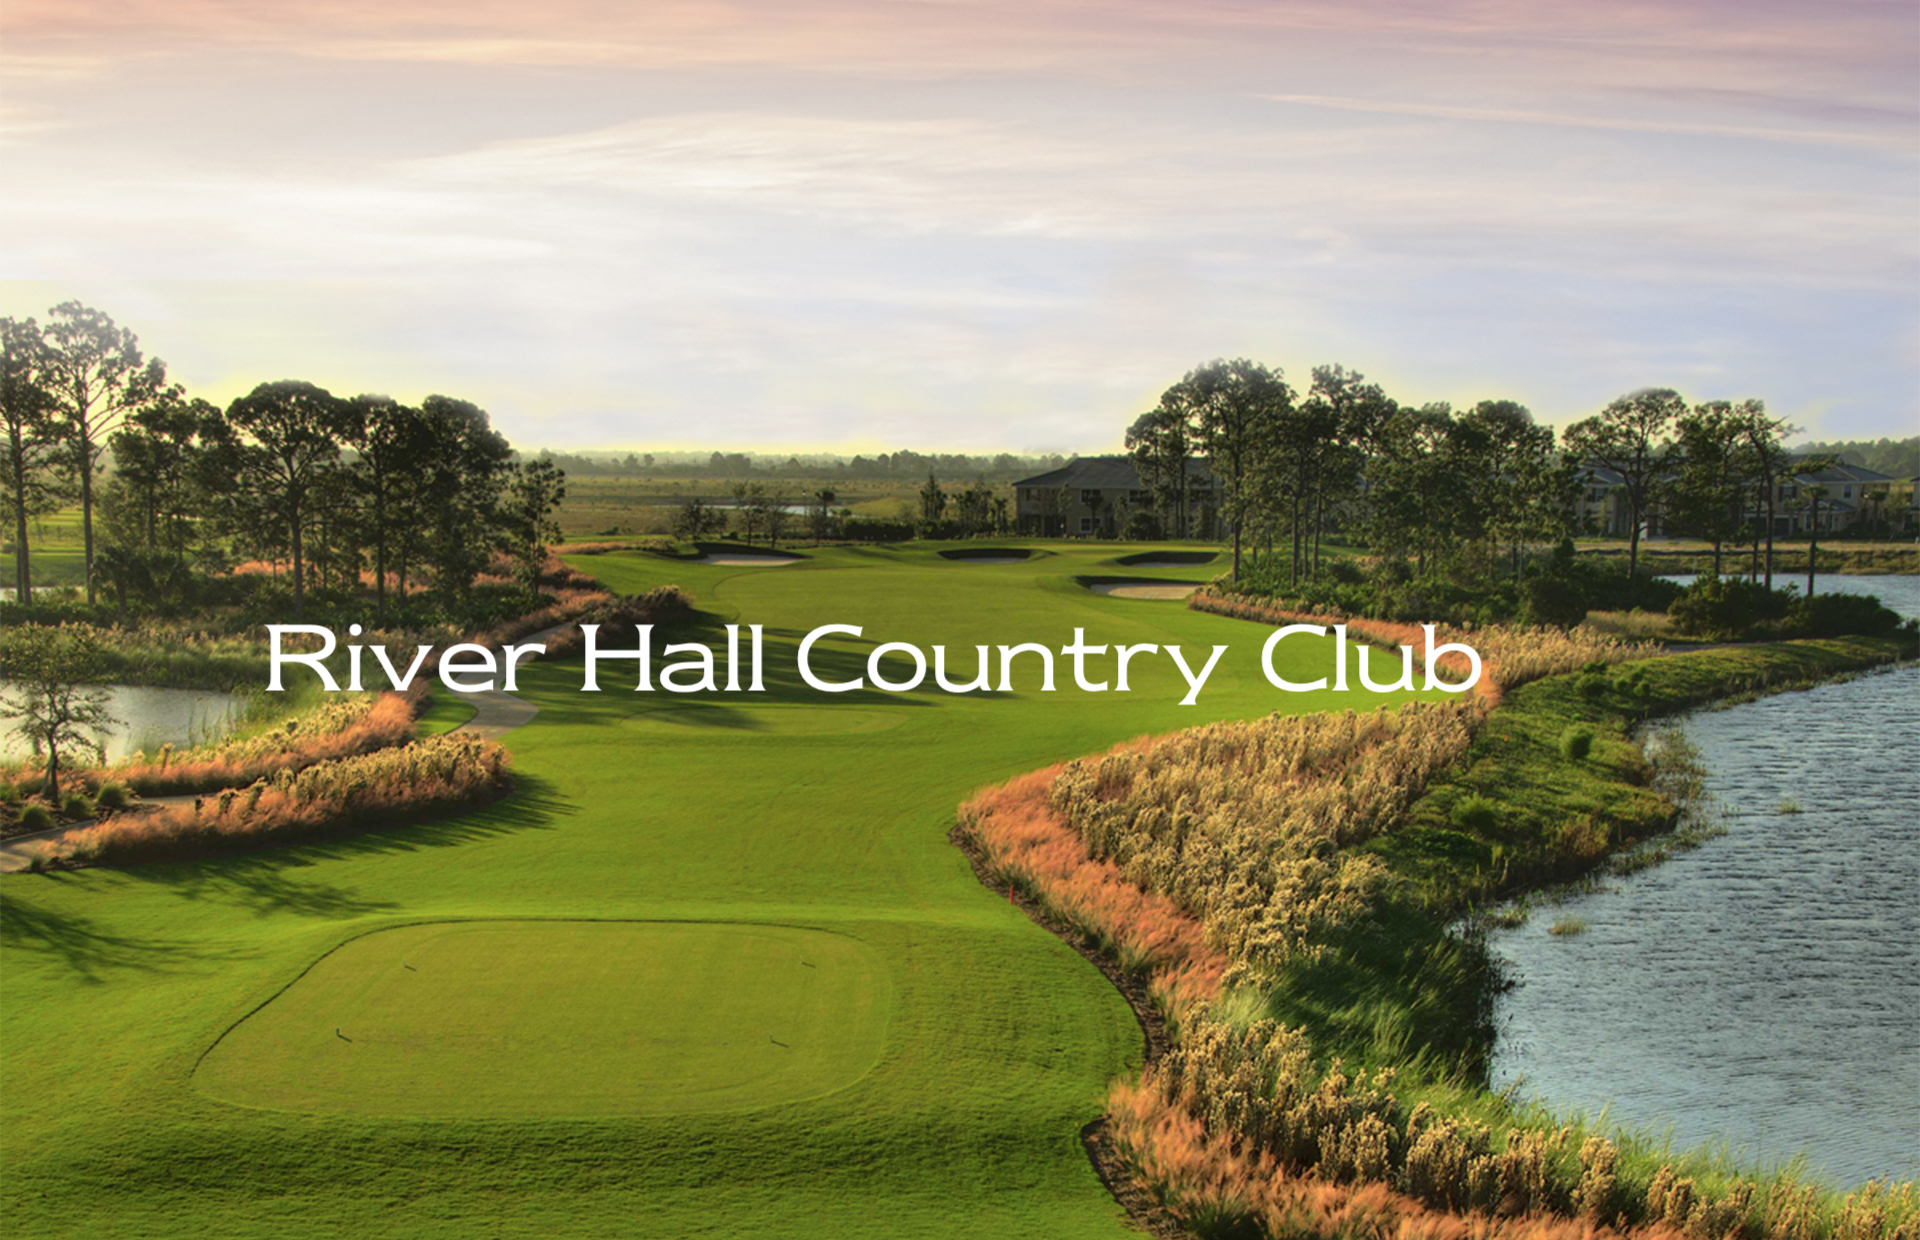 River Hall Country Club Branded jpg